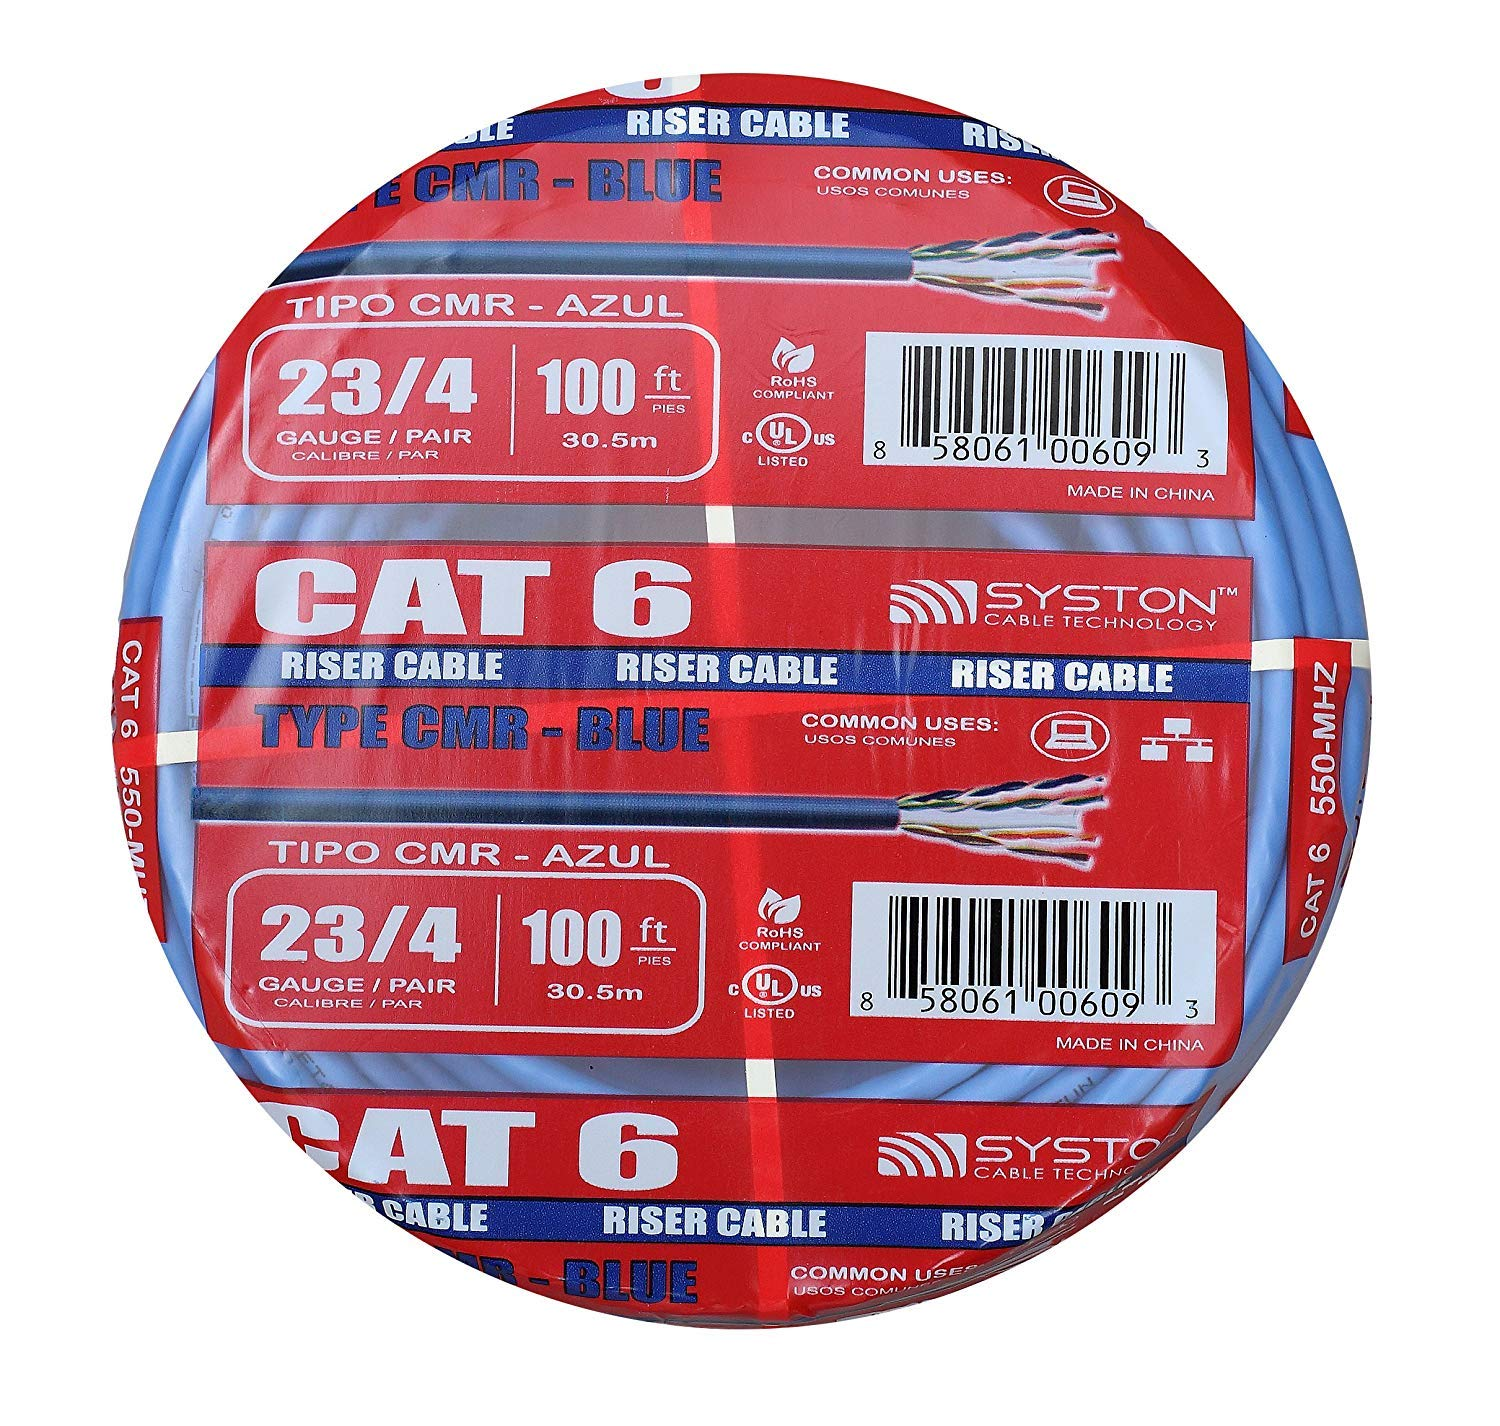 Cat6 Bulk Cable Raw 100ft Pure Copper, Outdoor / Indoor Heat Resistant, Solid, 550Mhz, 23AWG, Riser Rated CMR, Blue By Syston Cable by Syston Cable Technology